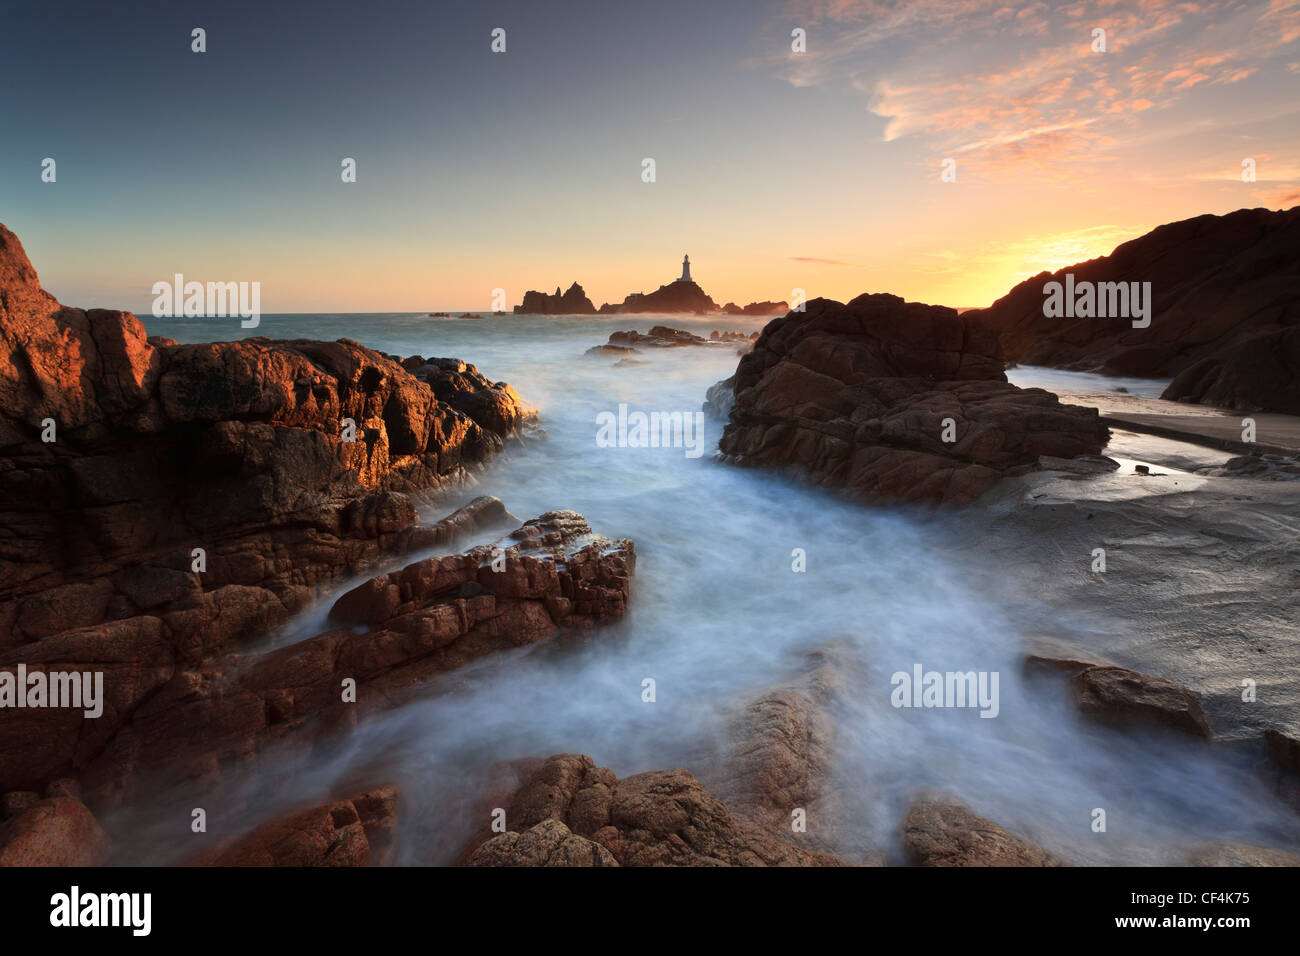 La Corbiere Lighthouse, the first in the British Isles to be built from concrete, at sunset. - Stock Image